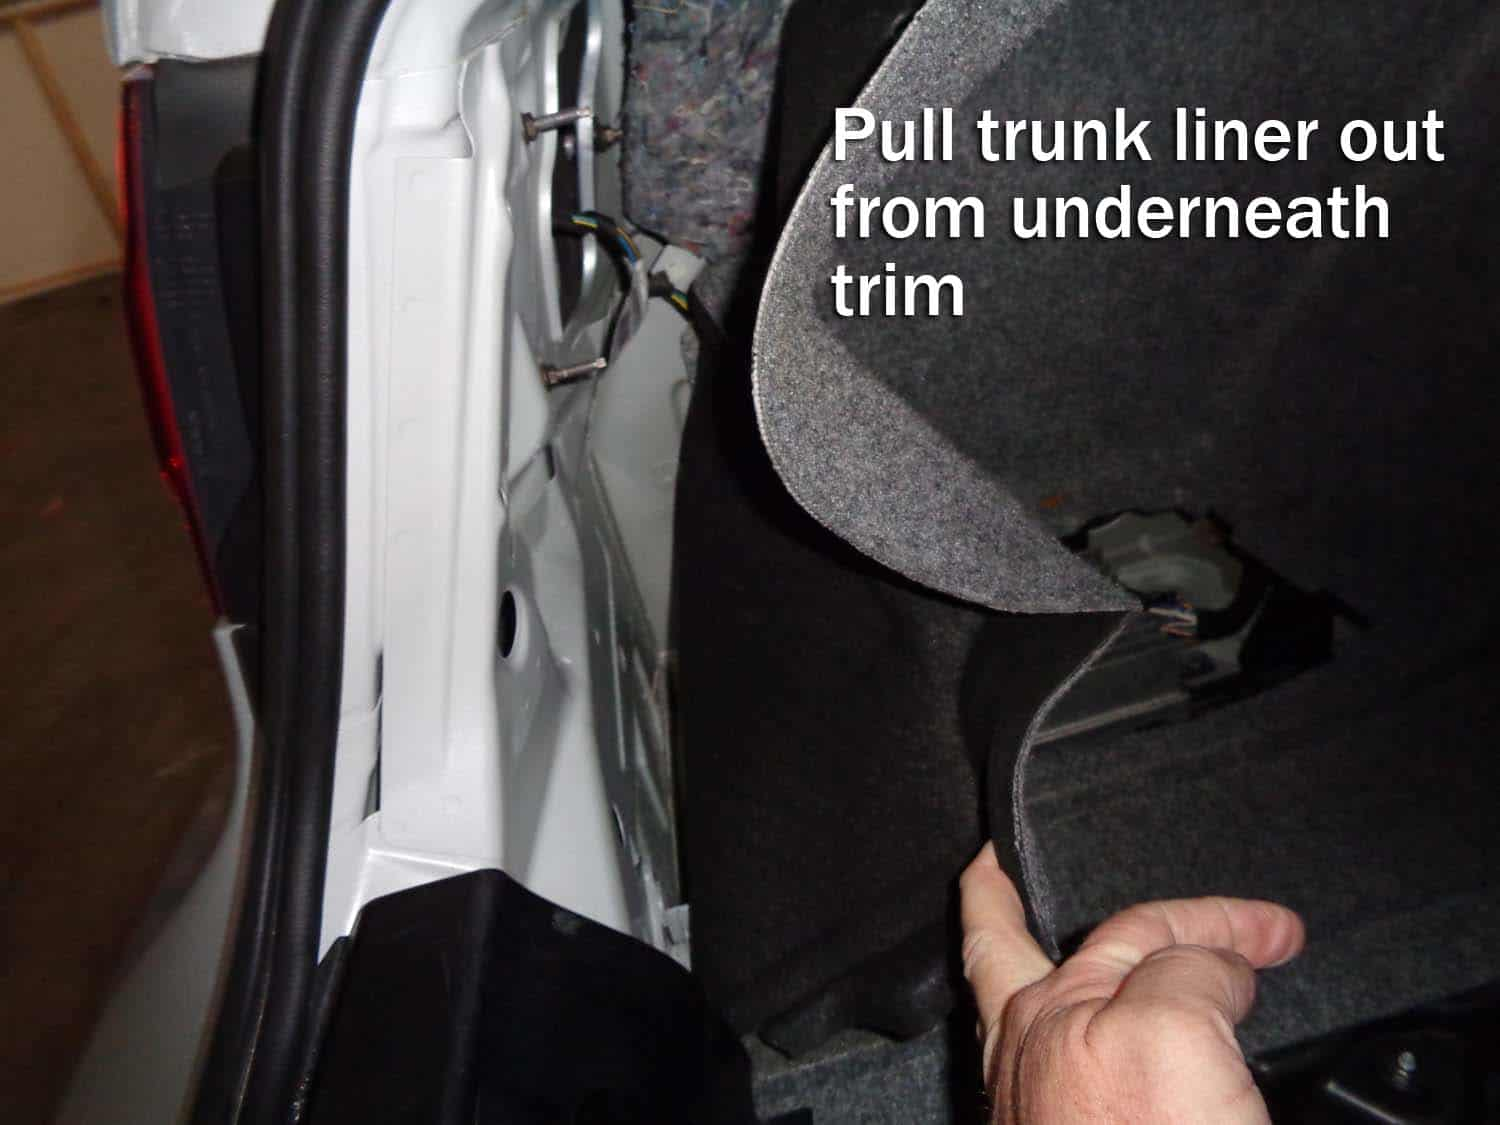 Pull the trunk liner out